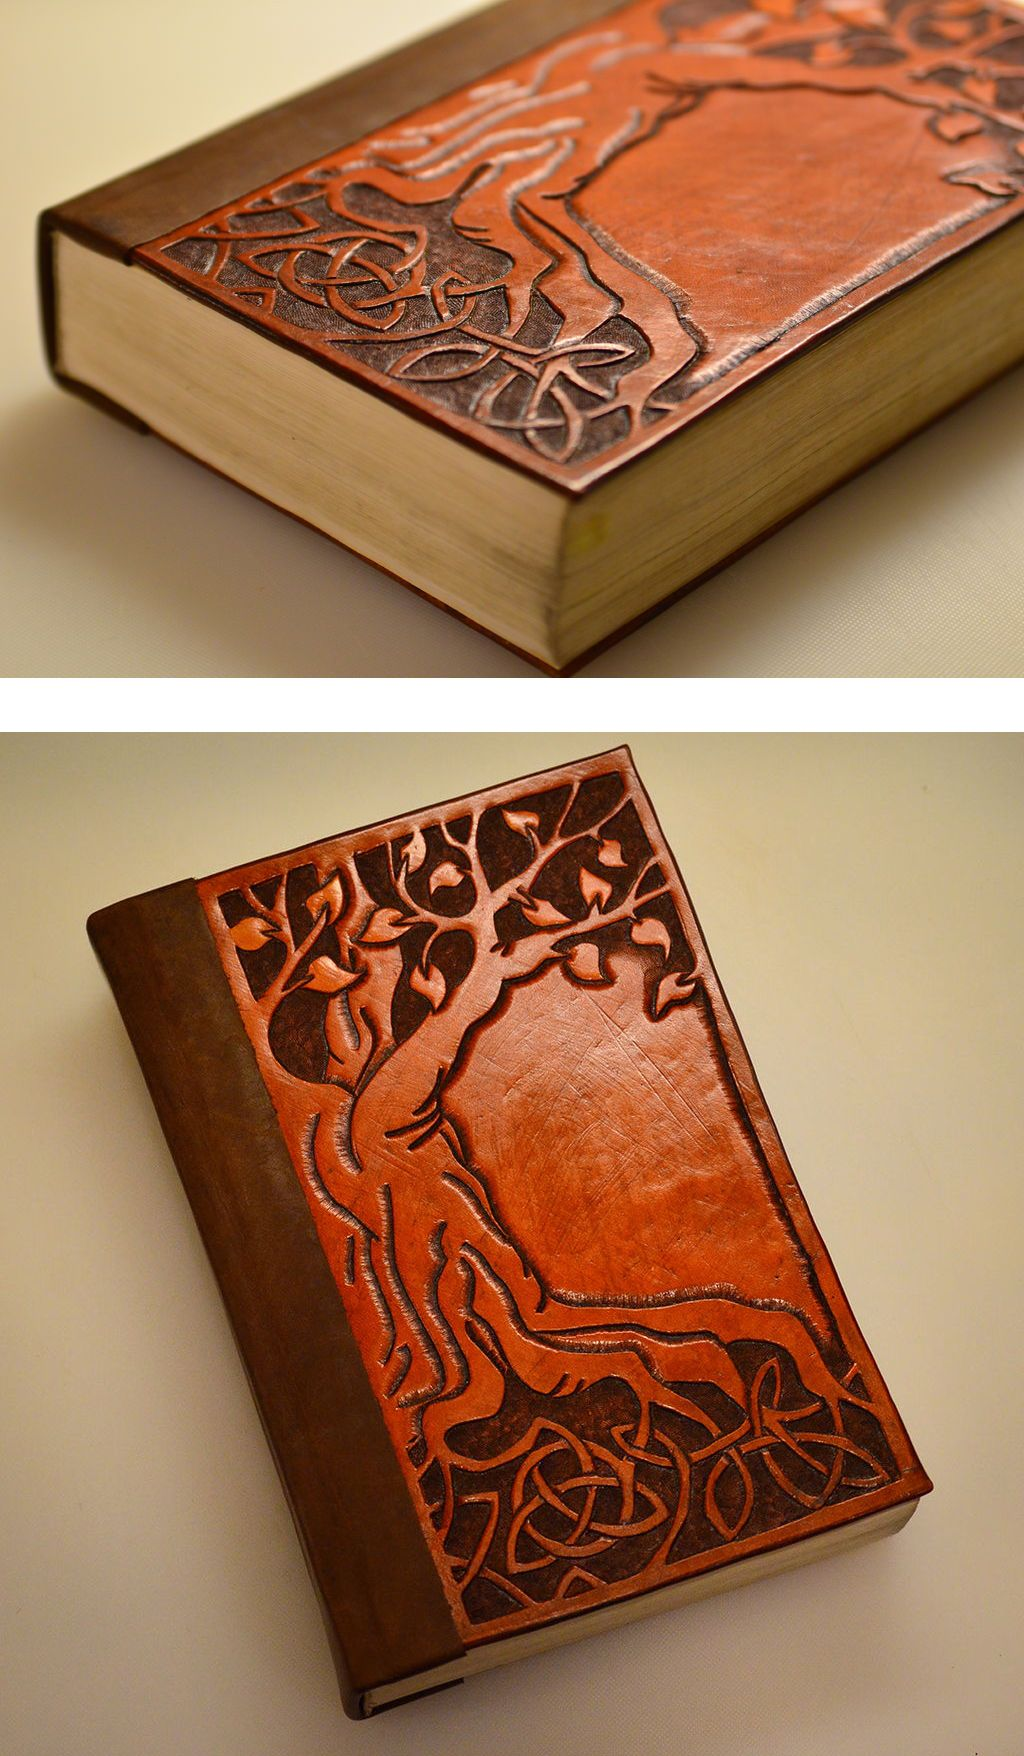 Bind a book in tooled leather diy leather books leather